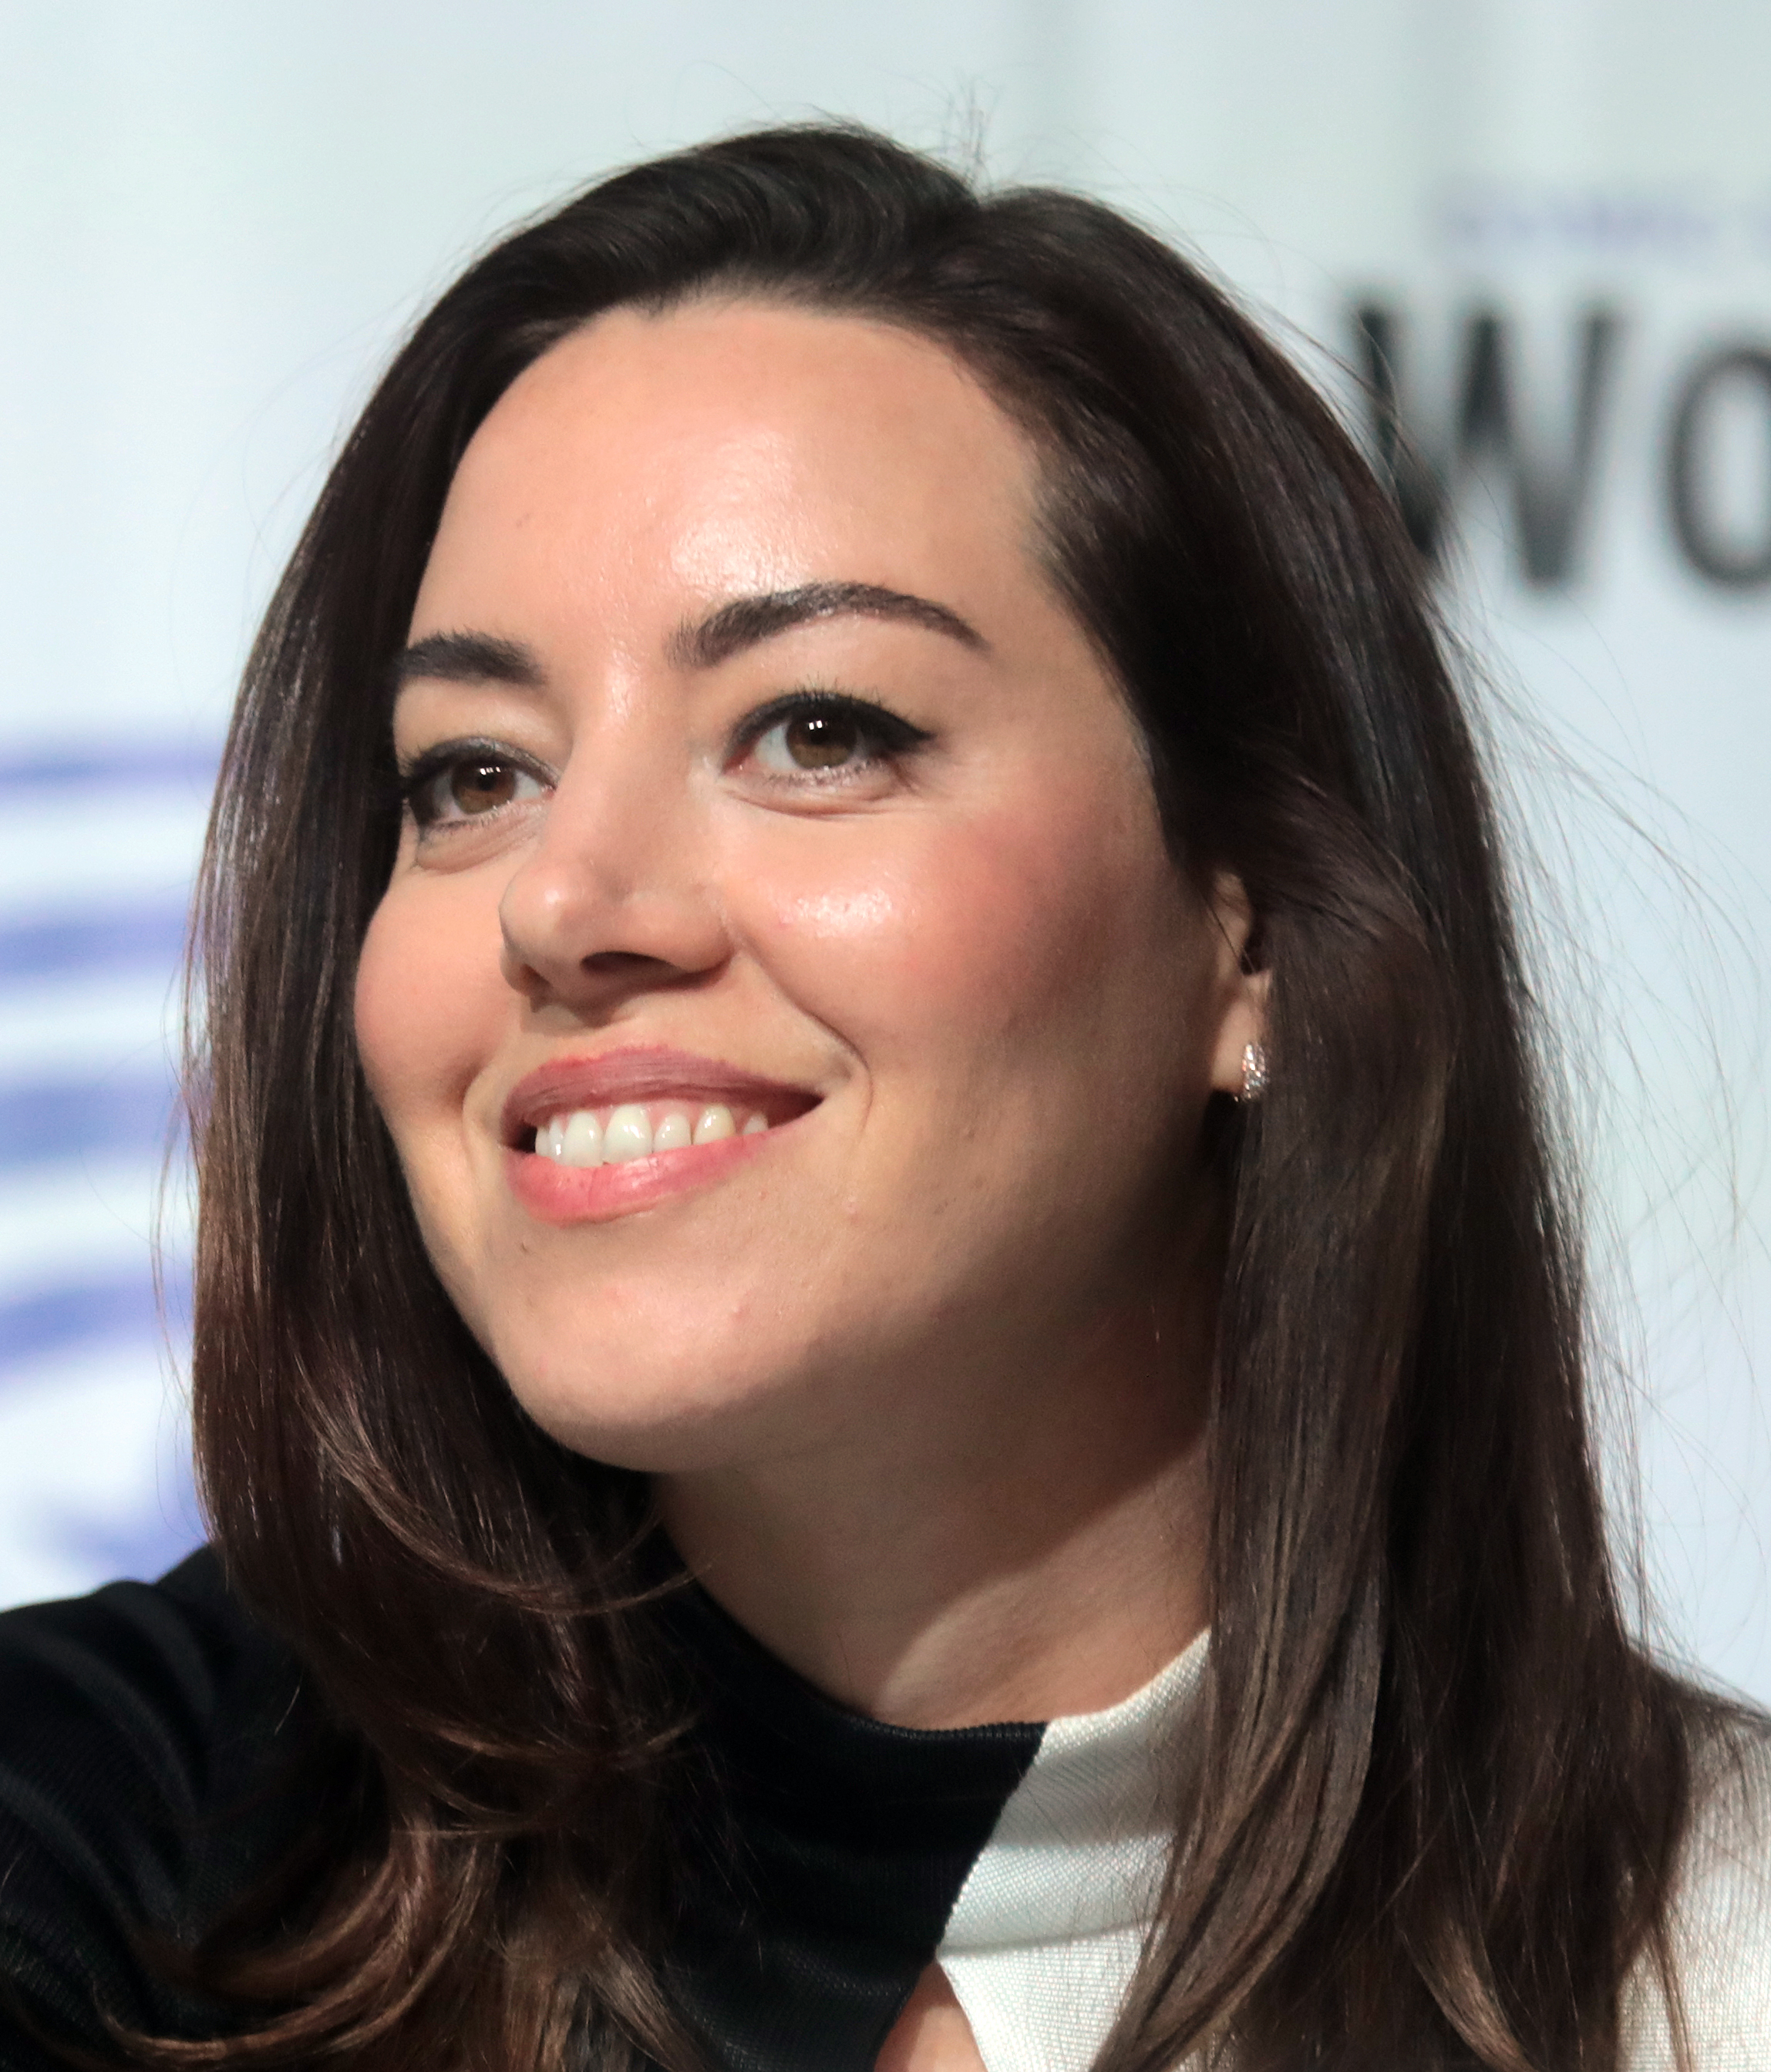 The 35-year old daughter of father David Plaza and mother Bernadette Plaza Aubrey Plaza in 2020 photo. Aubrey Plaza earned a  million dollar salary - leaving the net worth at 3 million in 2020